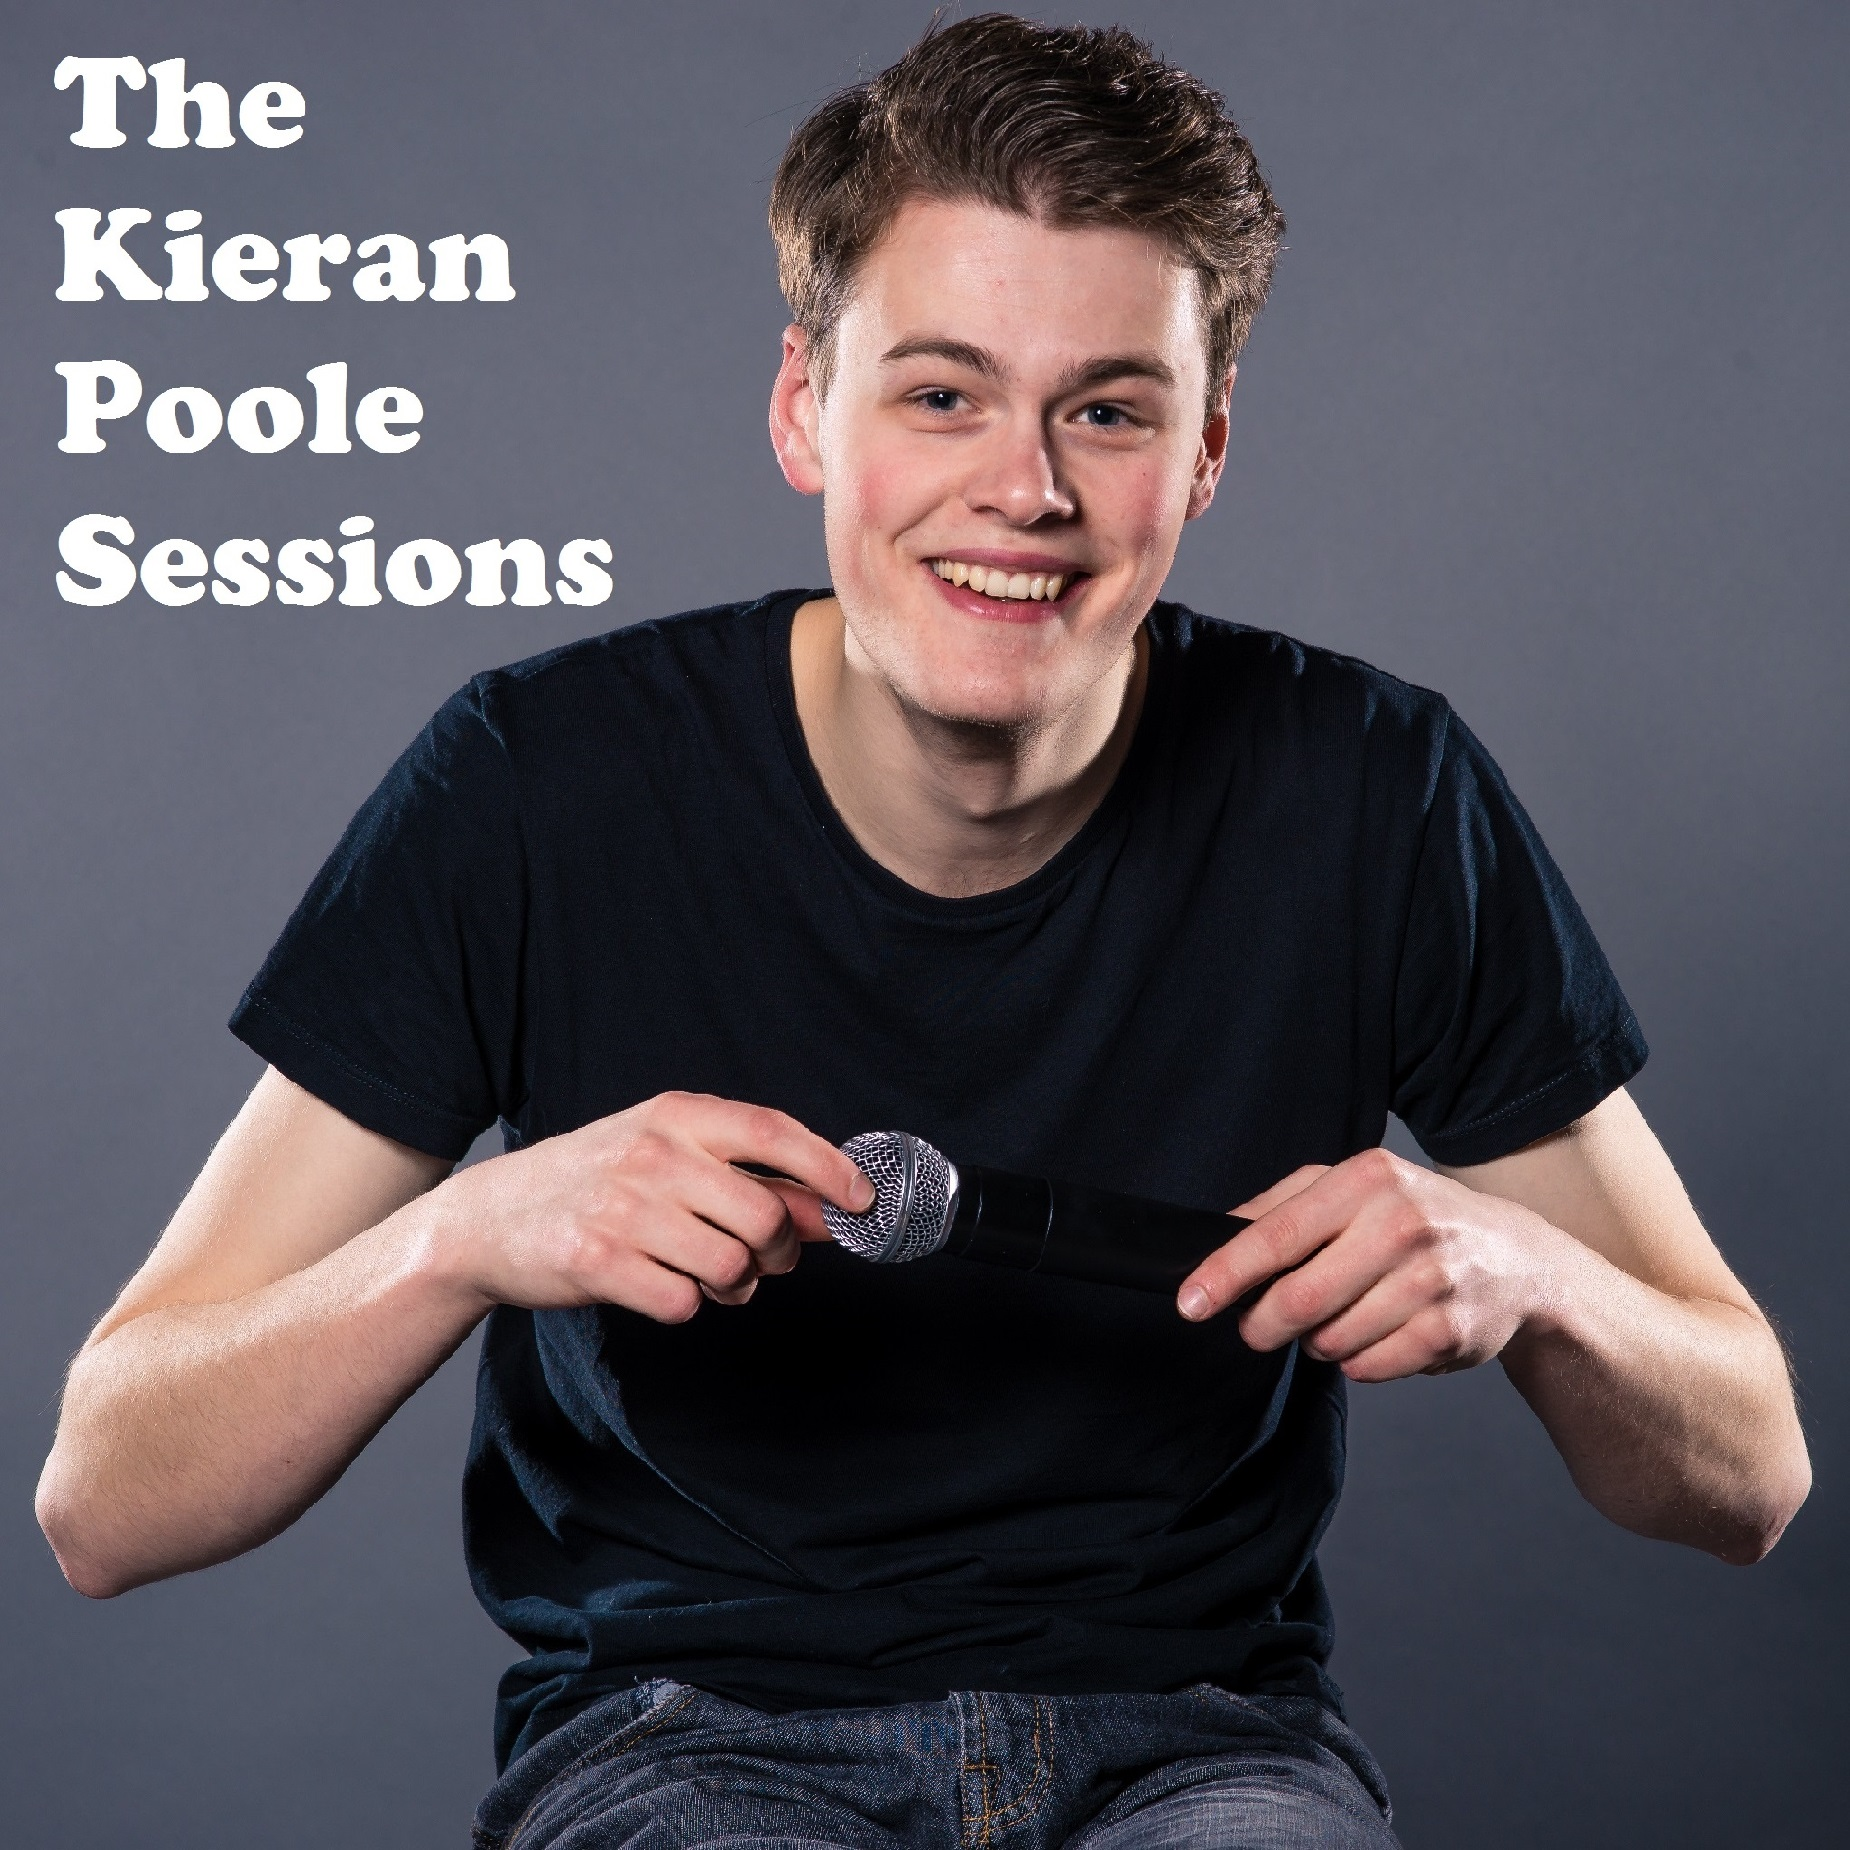 The Kieran Poole Sessions